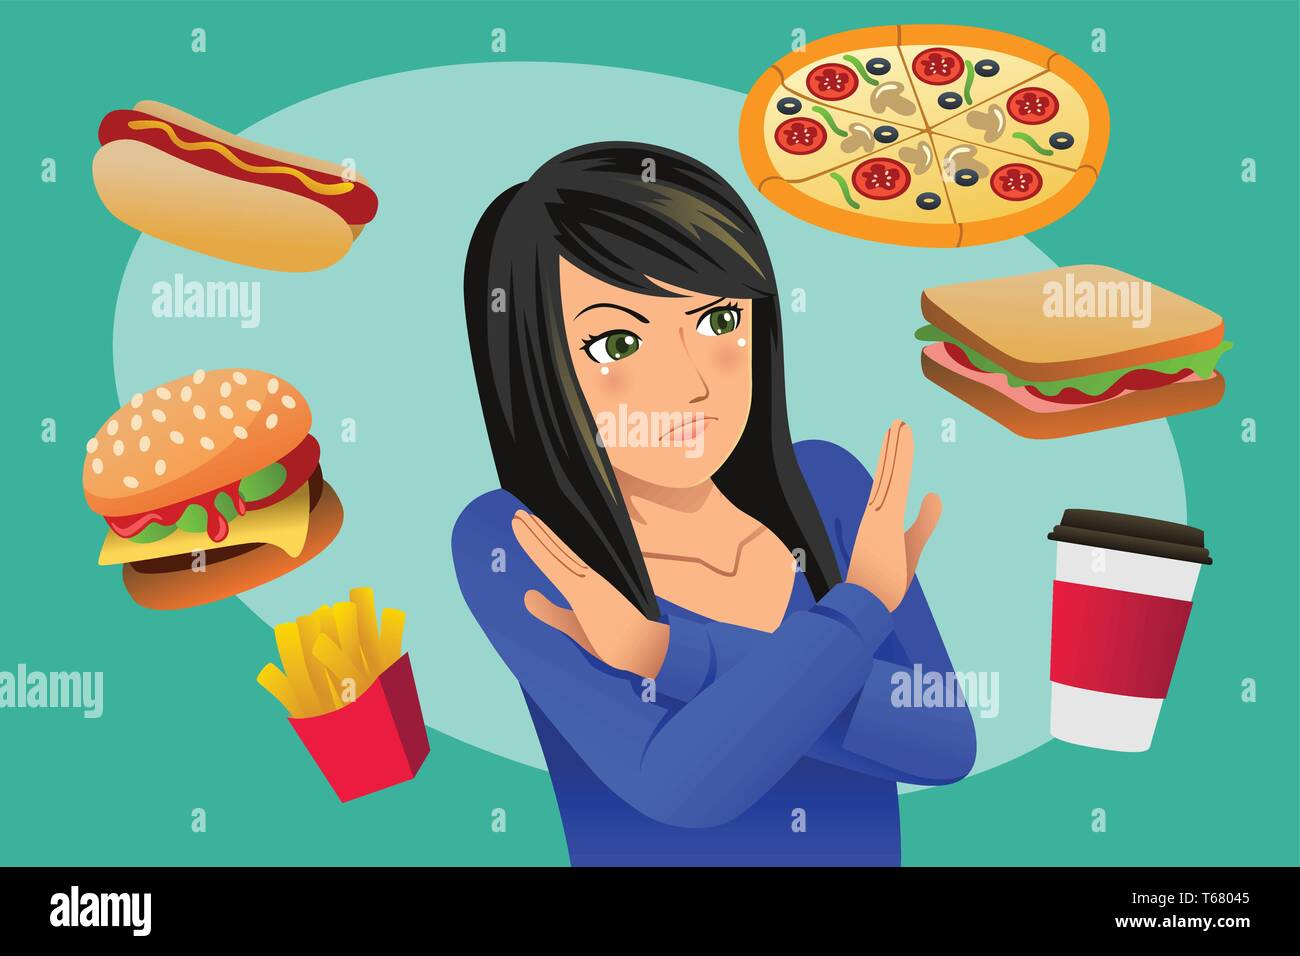 A vector illustration of Woman Refusing Fast Food Temptation - Stock Vector